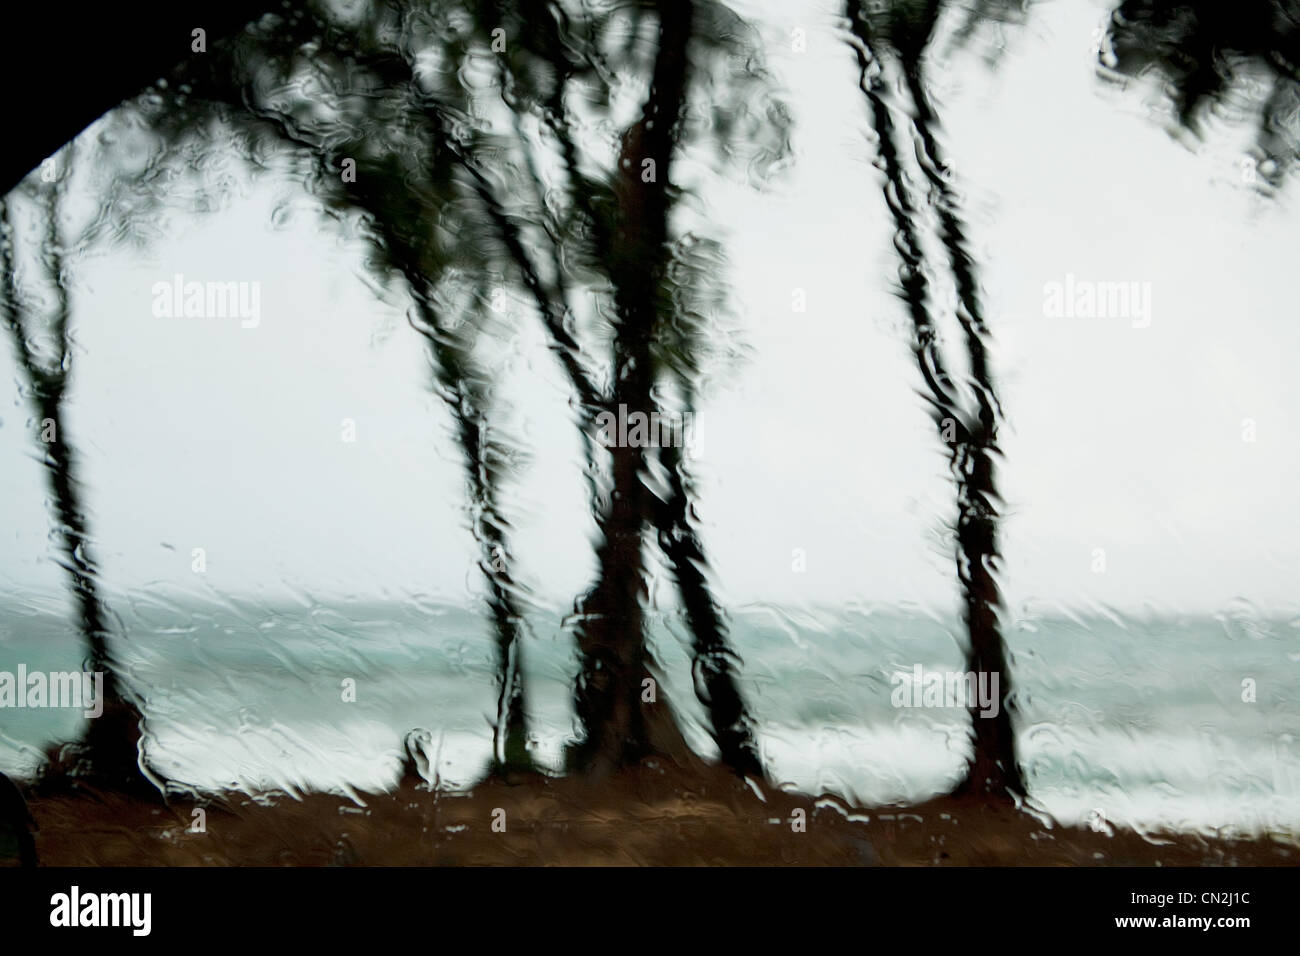 Raindrops on window and view of palm trees Stock Photo